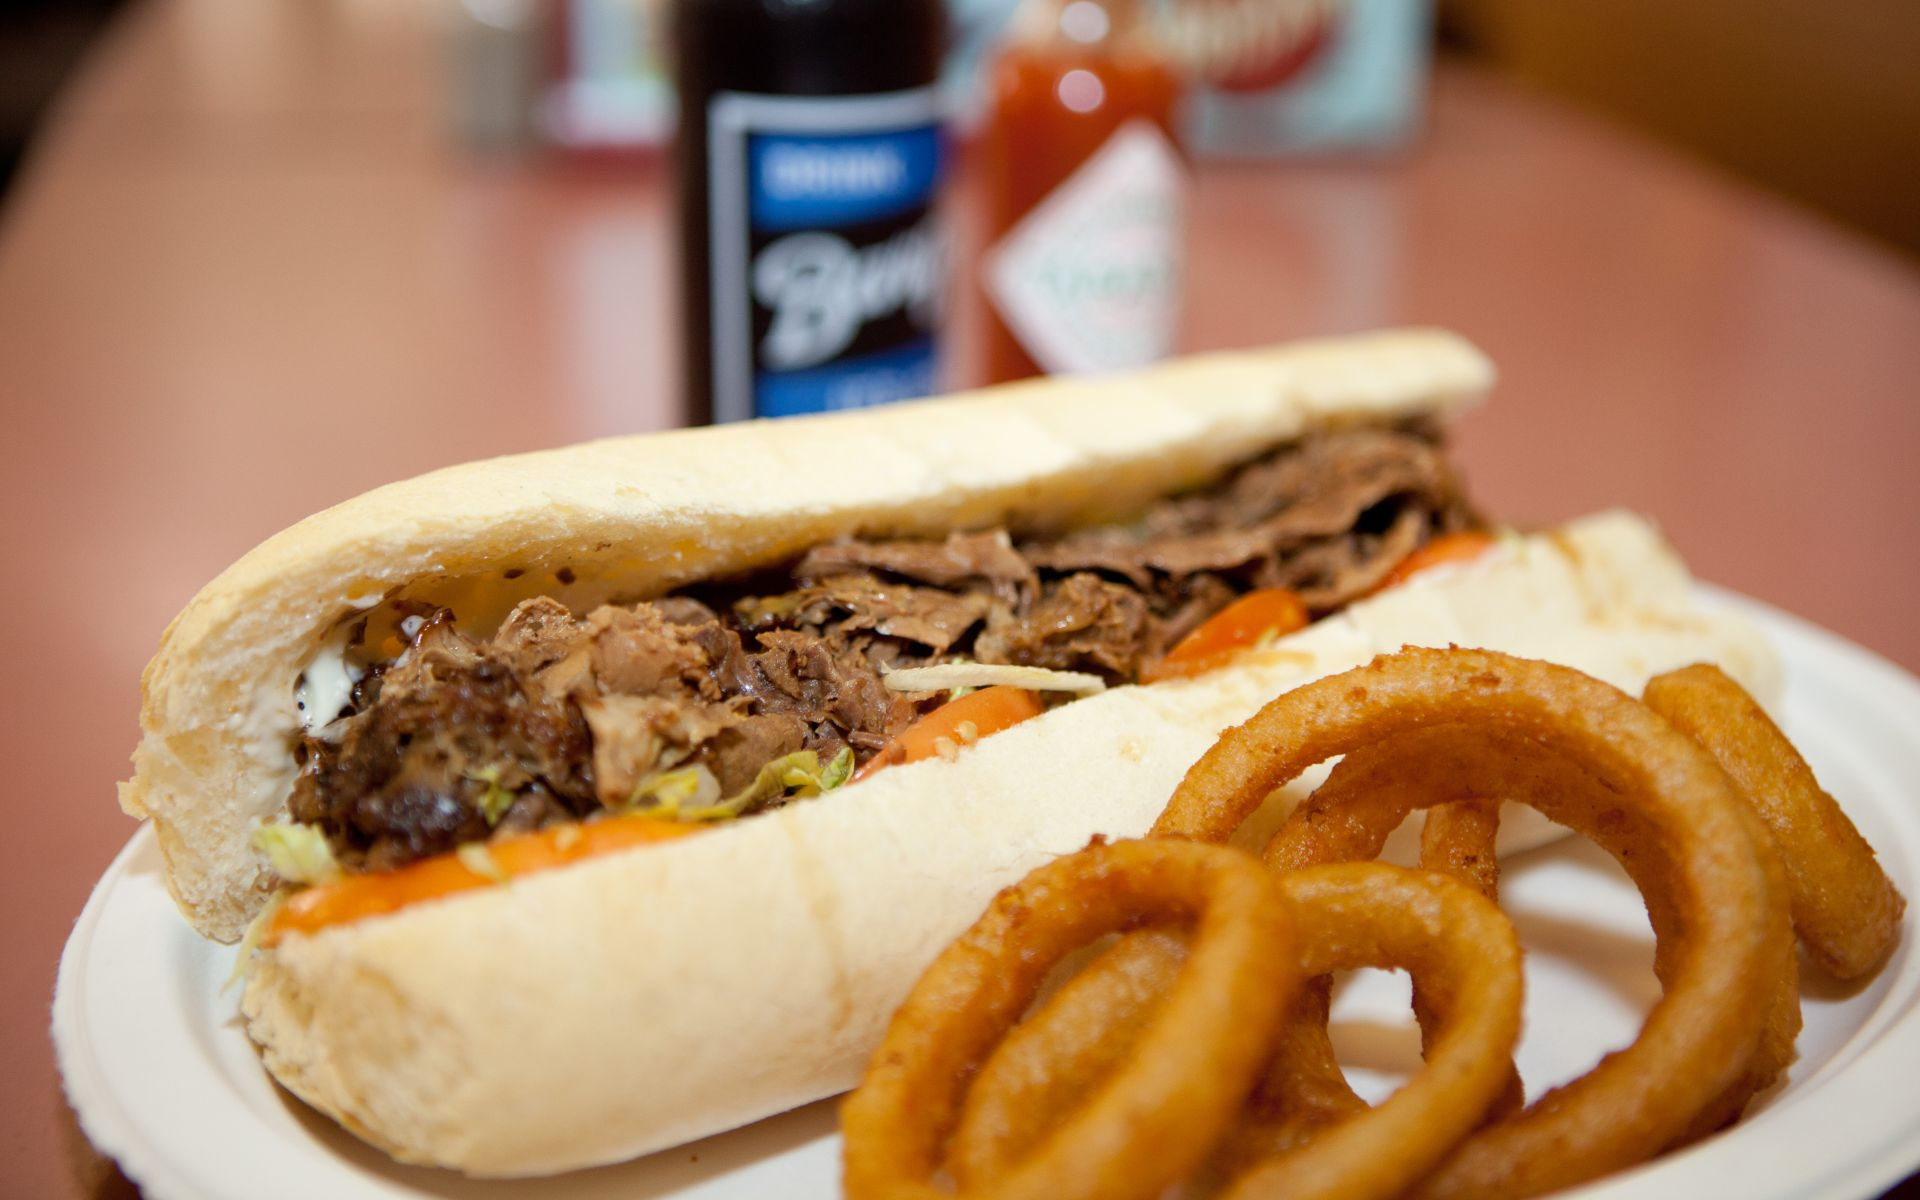 Pulled pork poboy with lettuce and tomato with onion rings